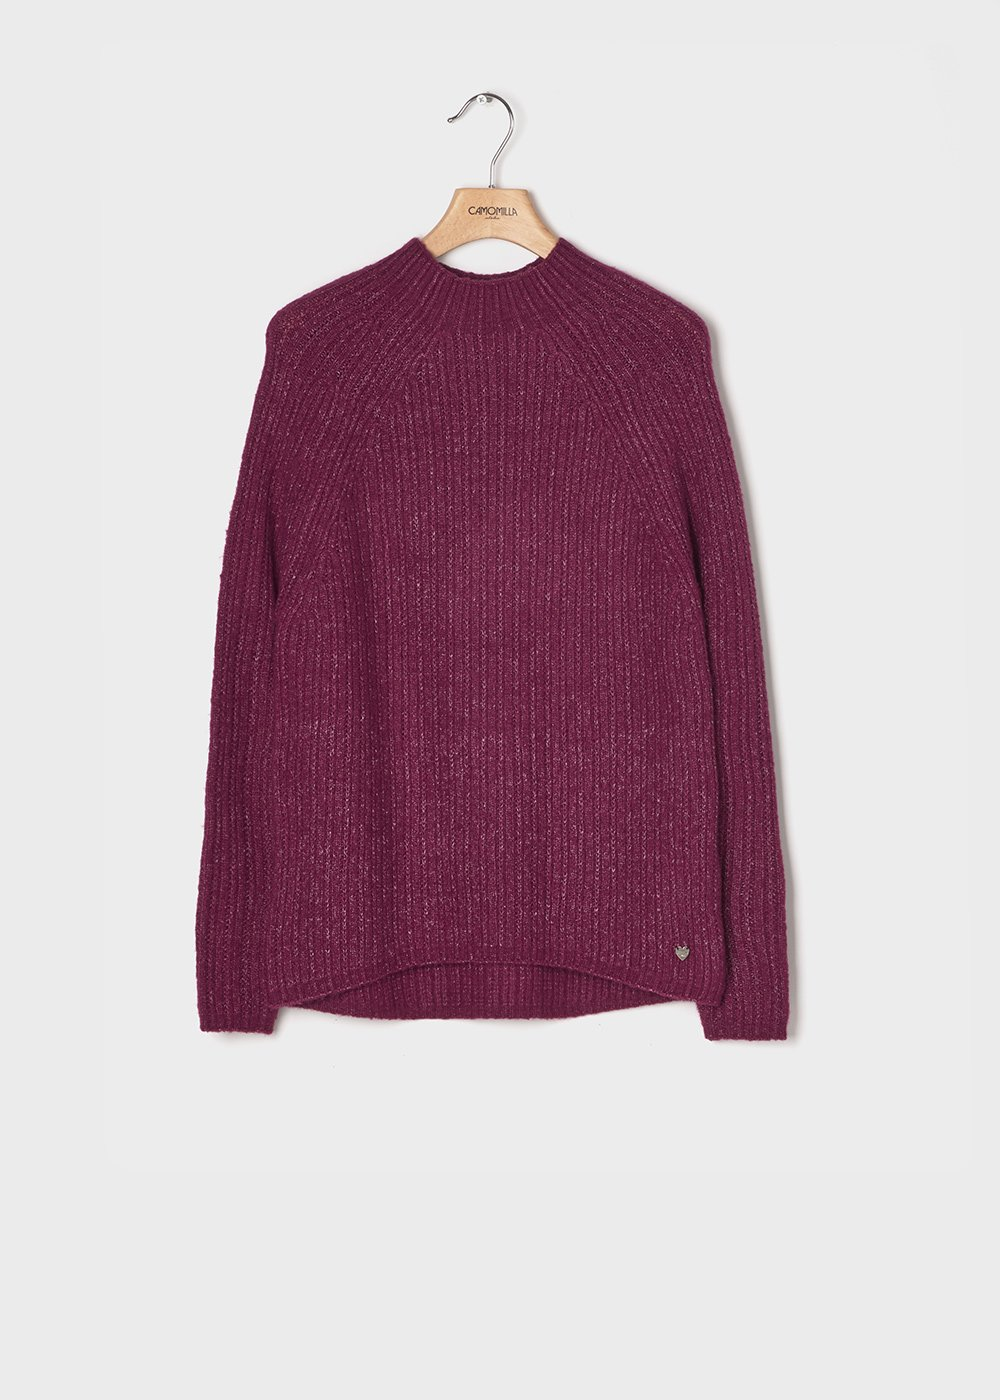 Manuela ribbed sweater